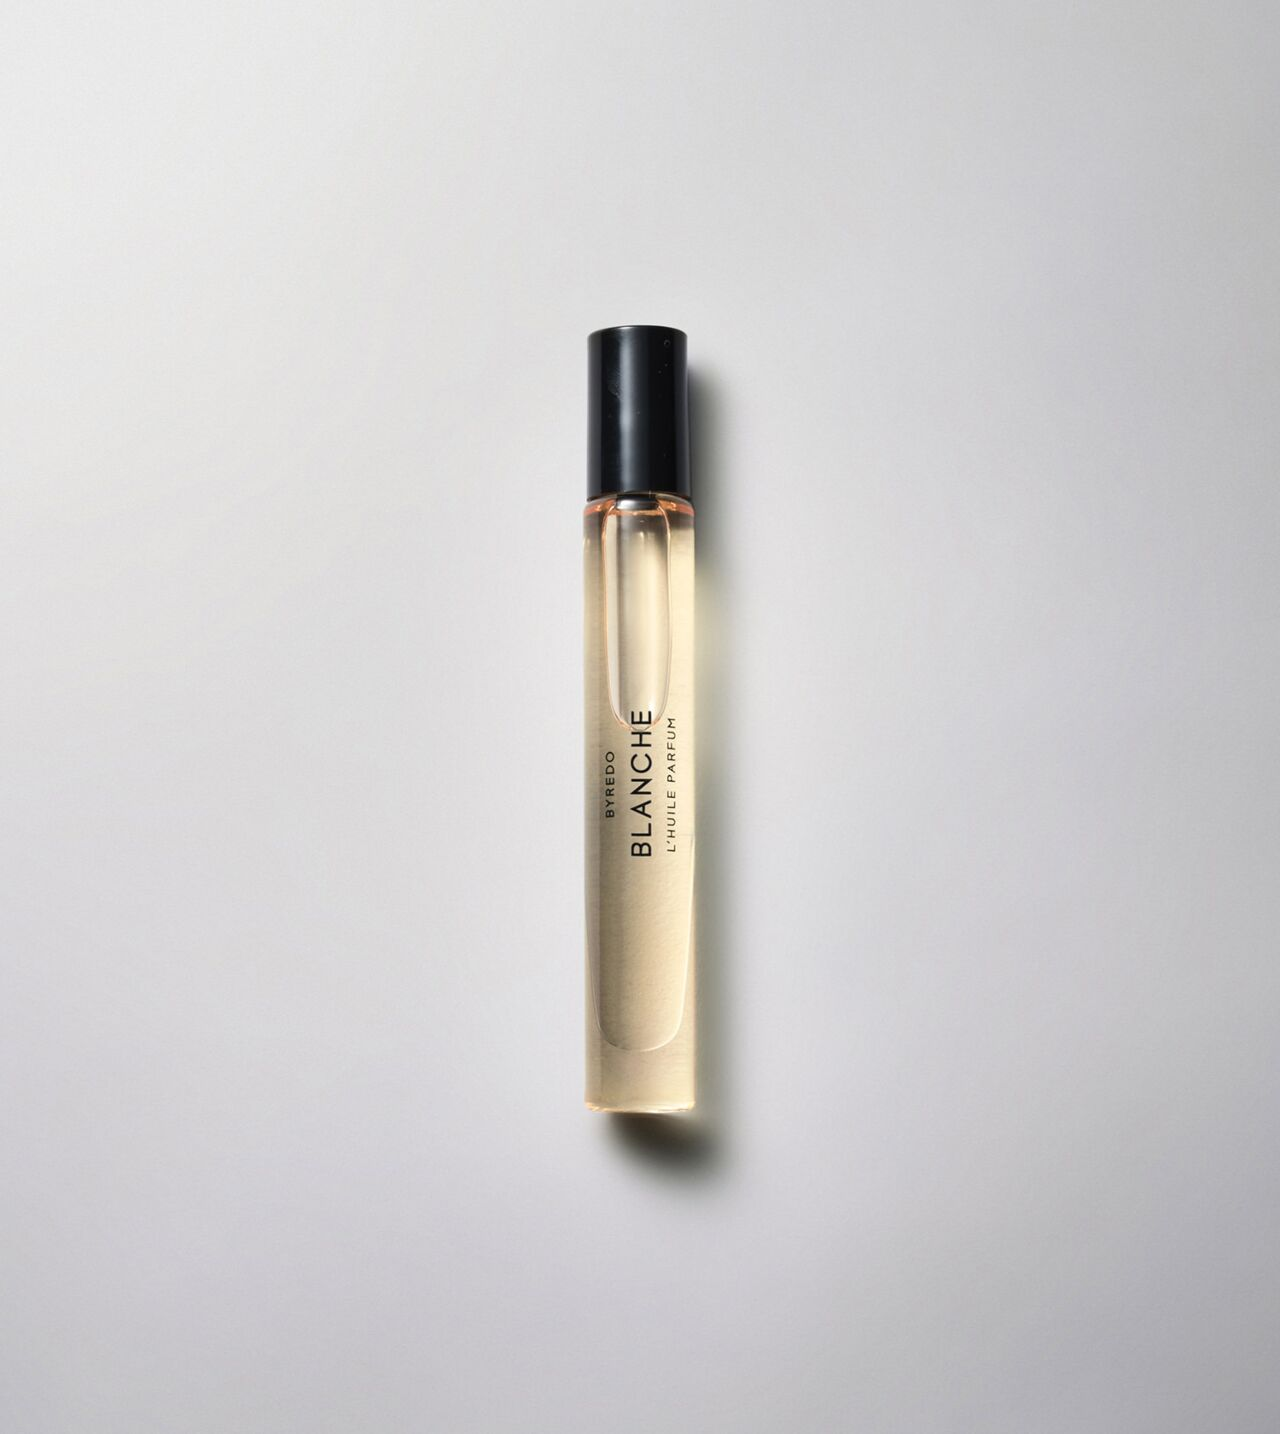 Picture of Byredo Blanche Roll-on perfumed oil 7.5ml